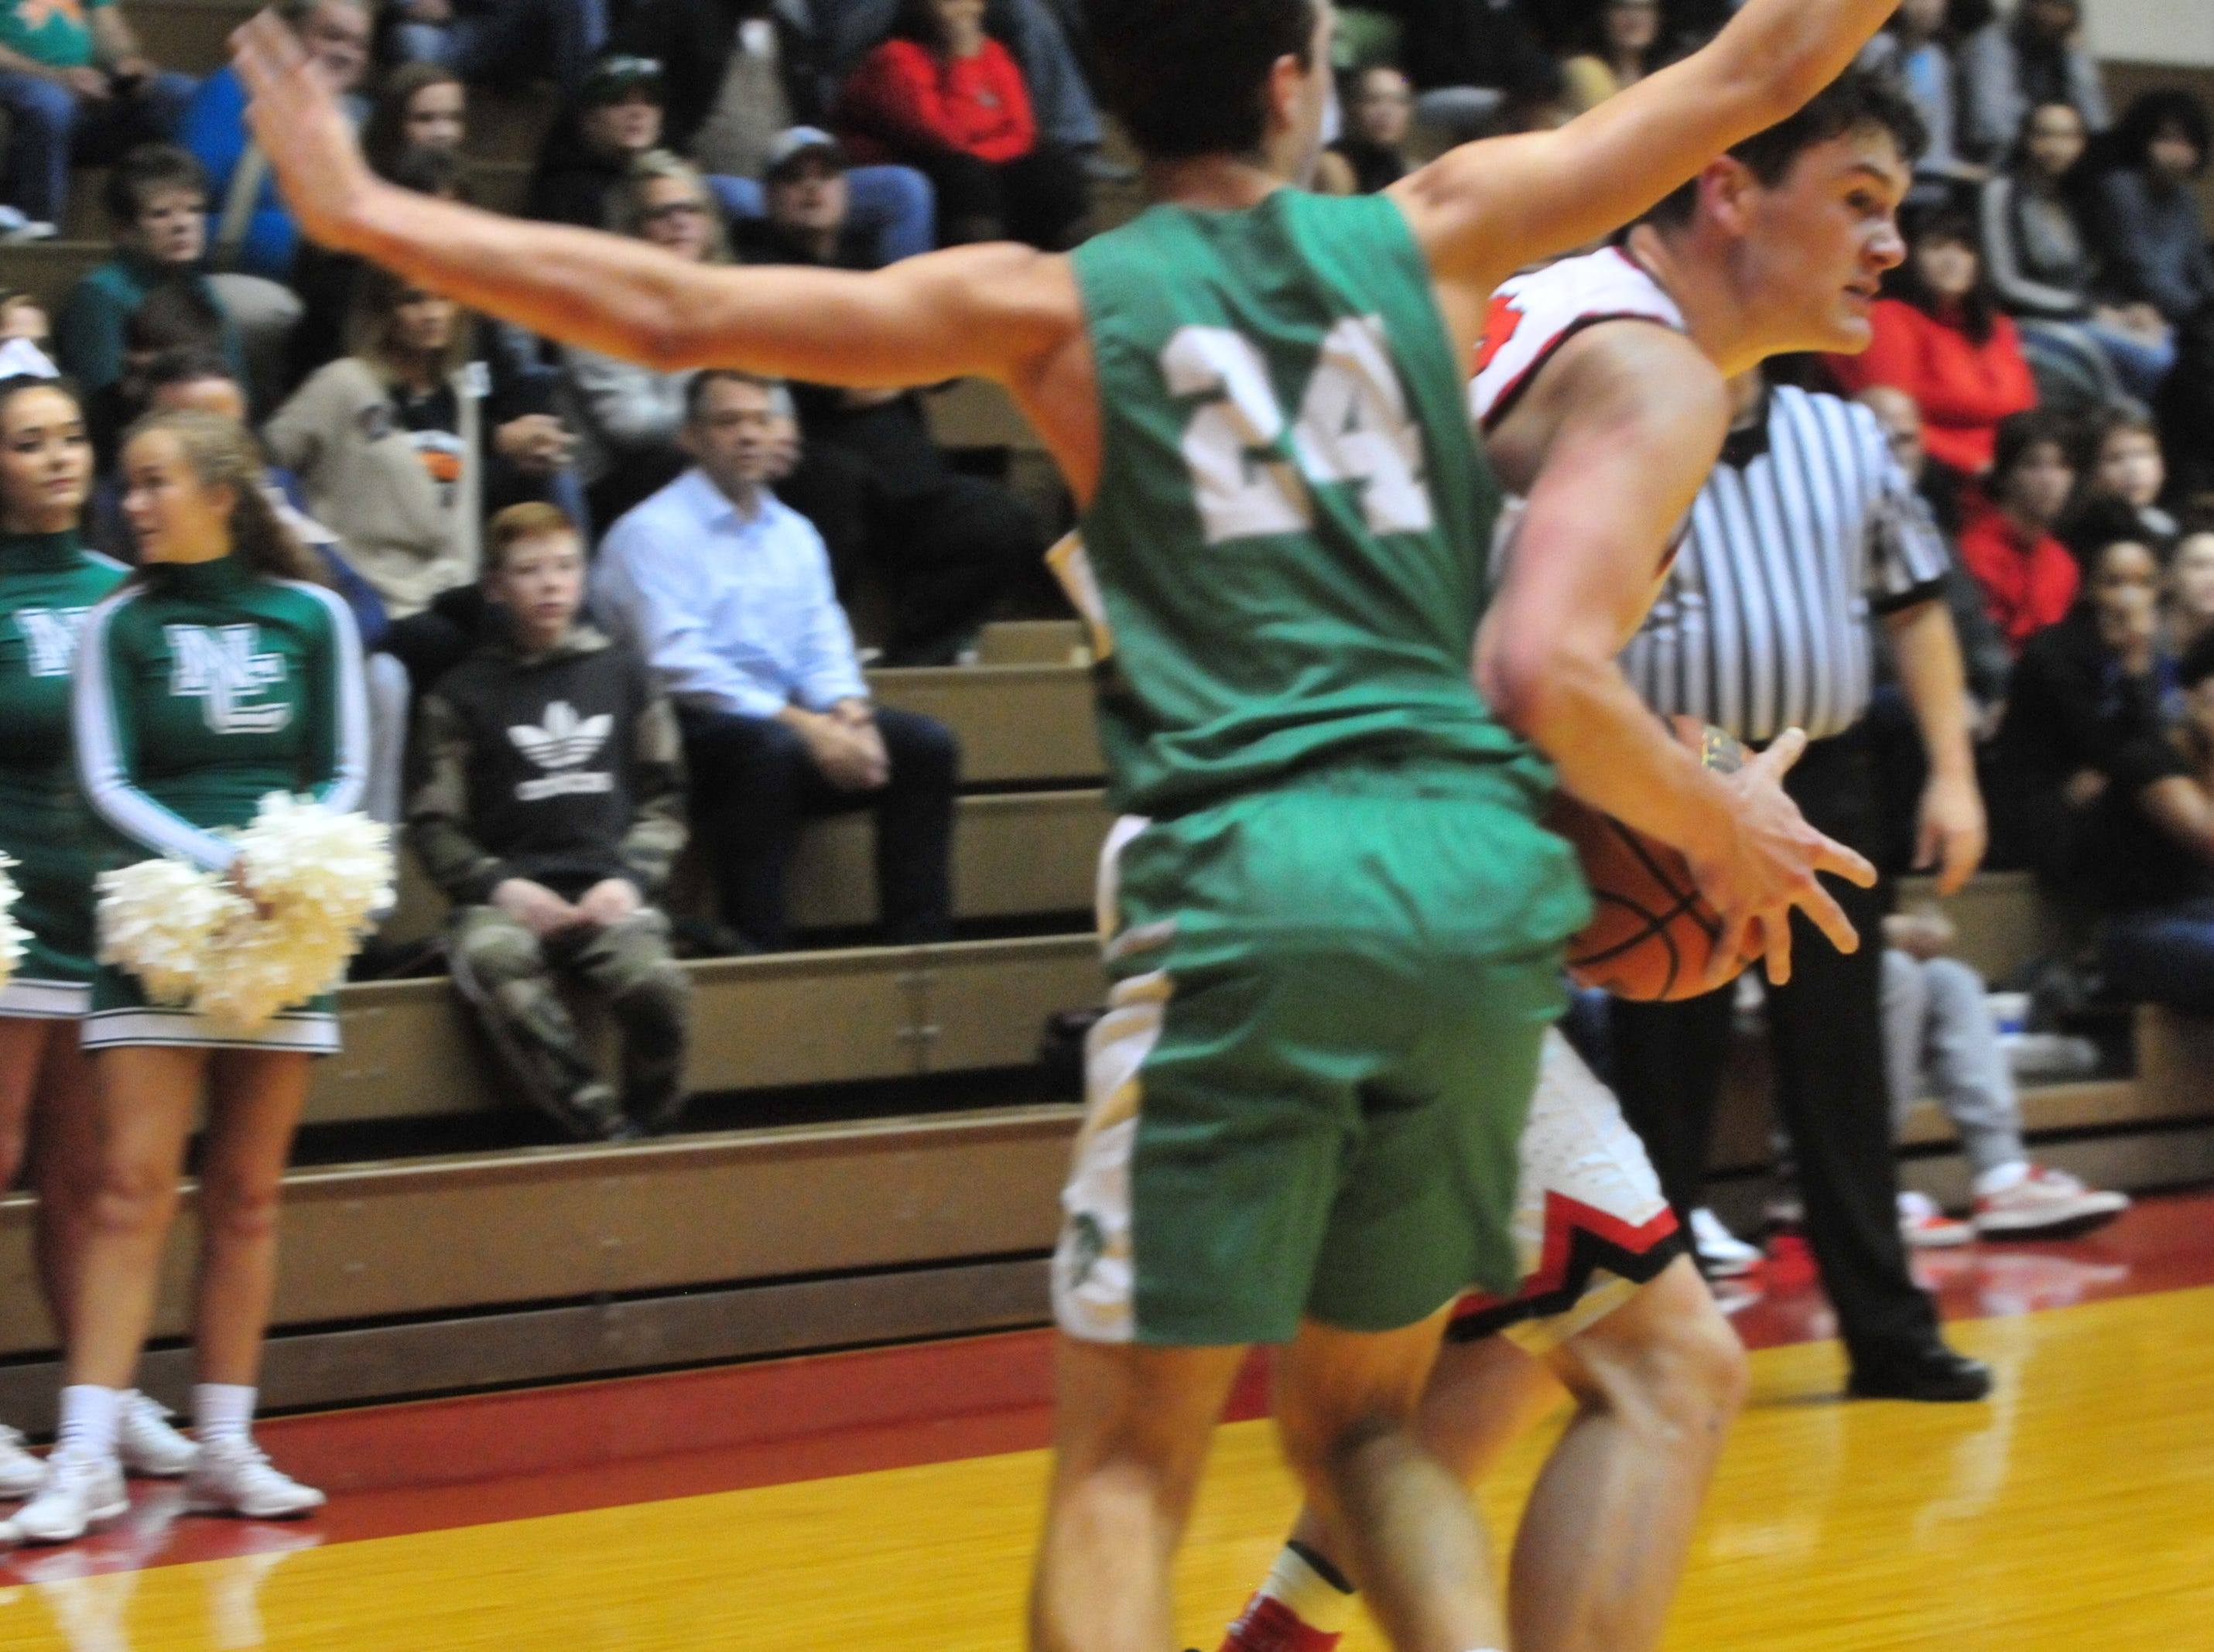 Richmond High School senior Lucas Kroft (10) moves the ball against New Castle's Nicholas Grieser (24) during a boys basketball game at Tiernan Center Friday, Jan. 4, 2019.